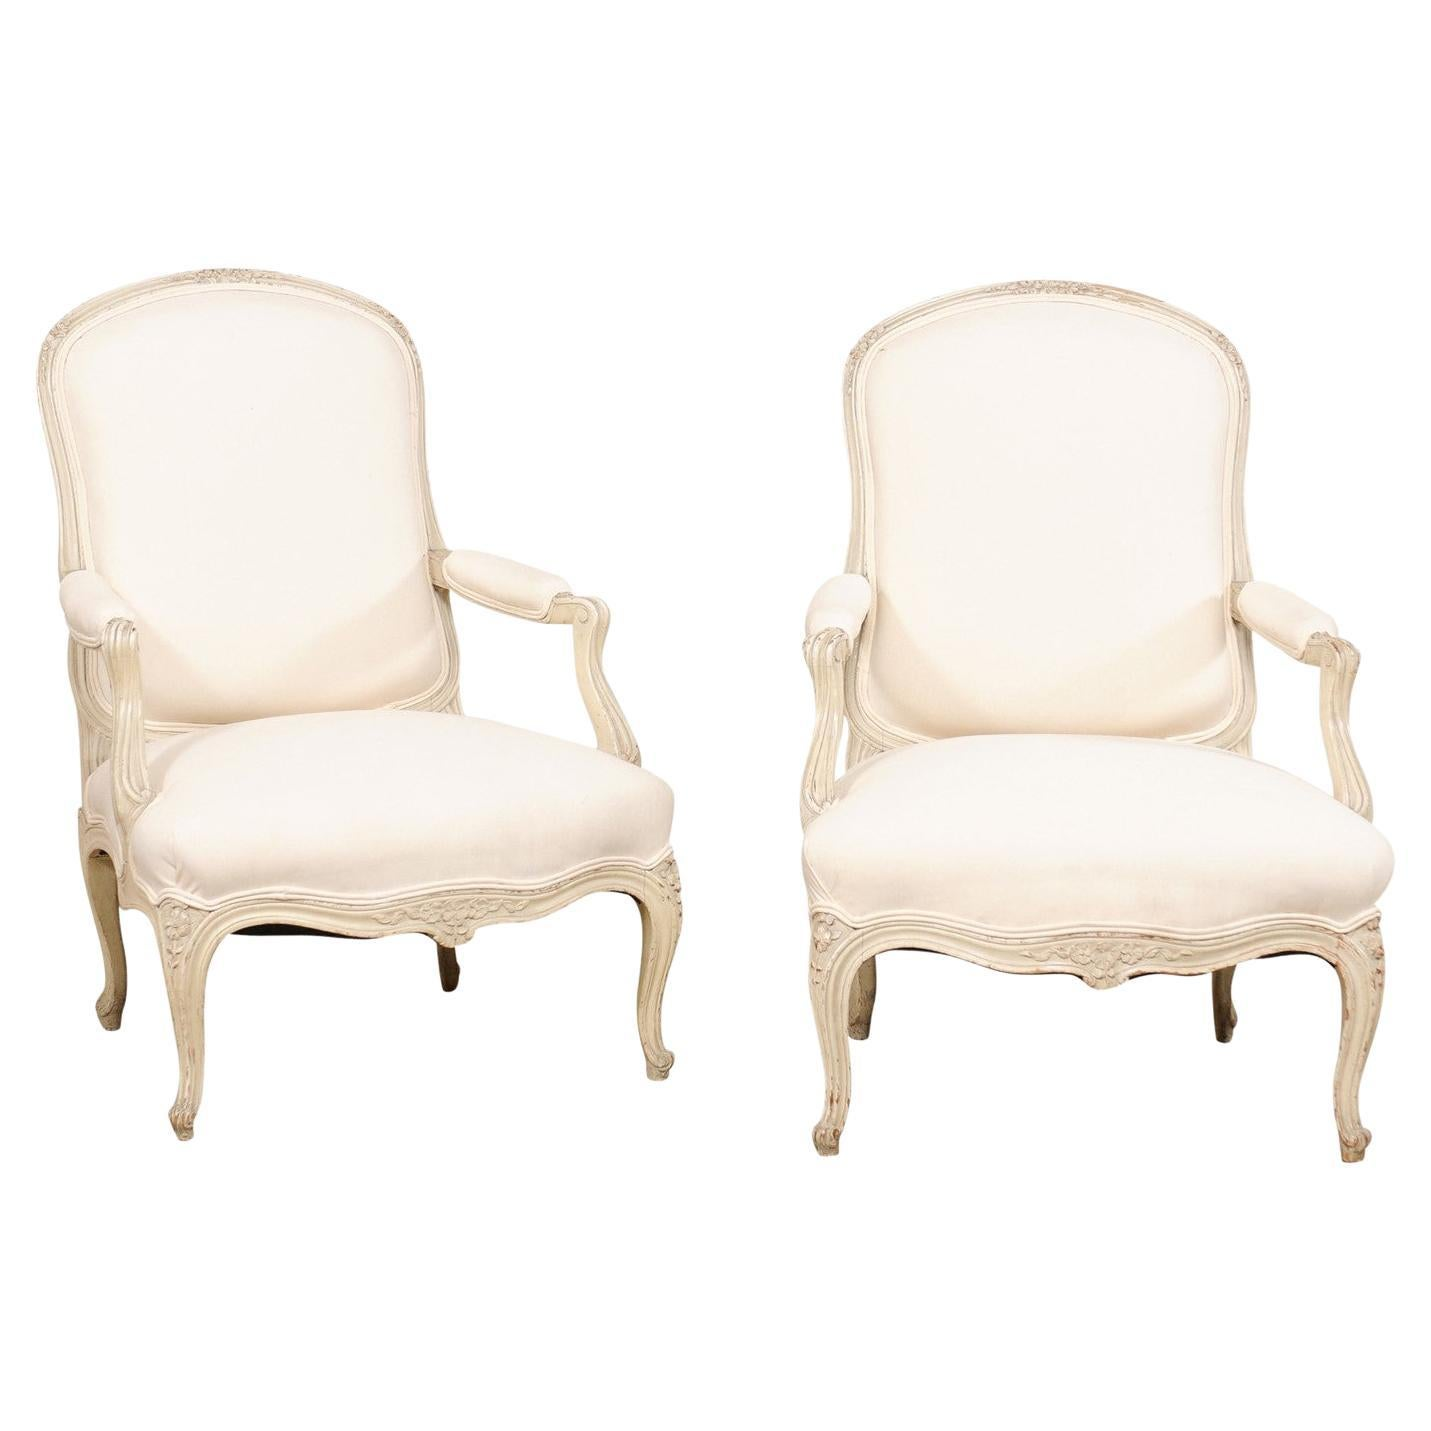 French Pair of Carved-Wood & Newly Upholstered Armchairs from the Early 20th C